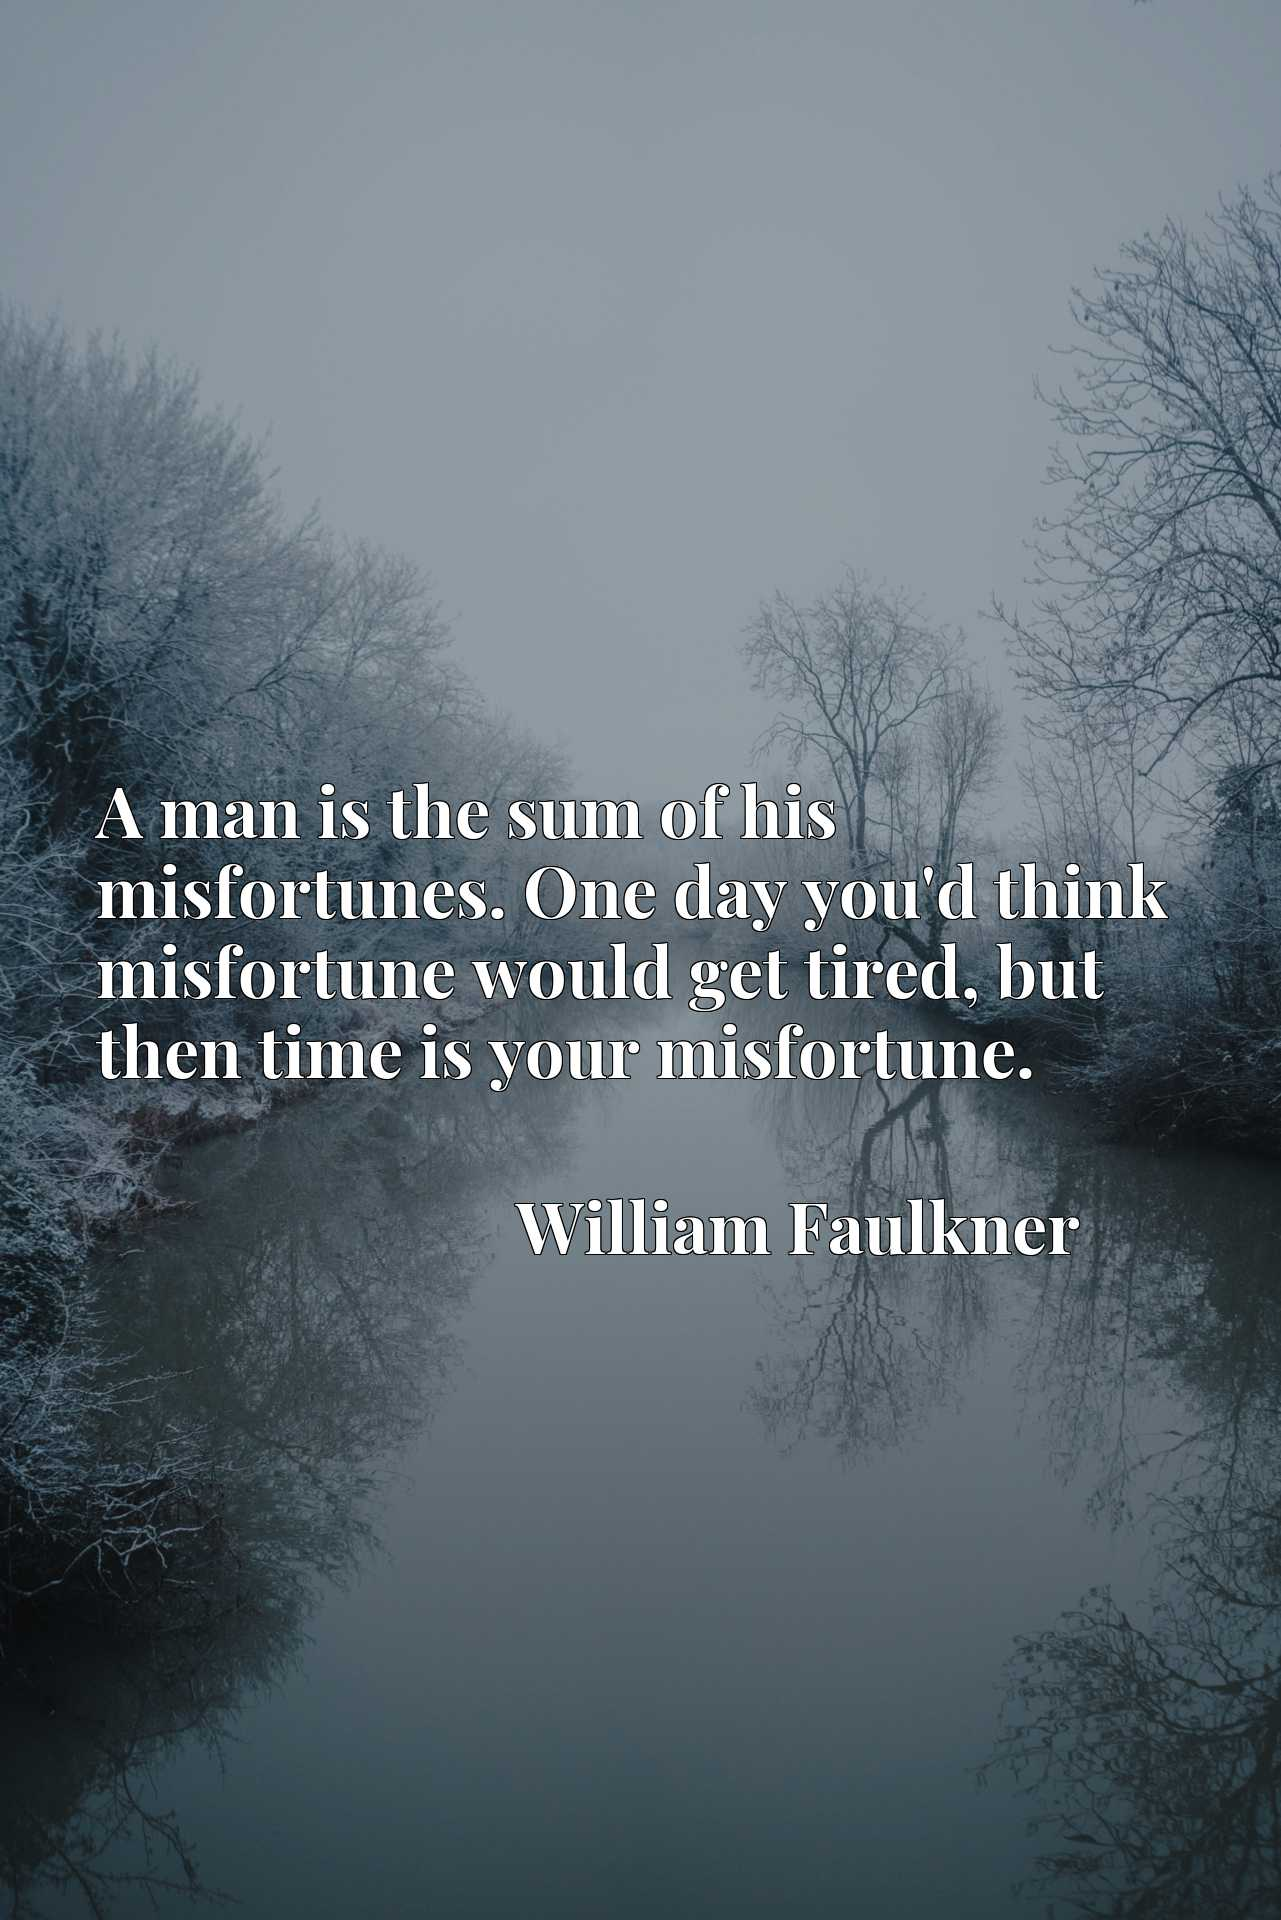 A man is the sum of his misfortunes. One day you'd think misfortune would get tired, but then time is your misfortune.